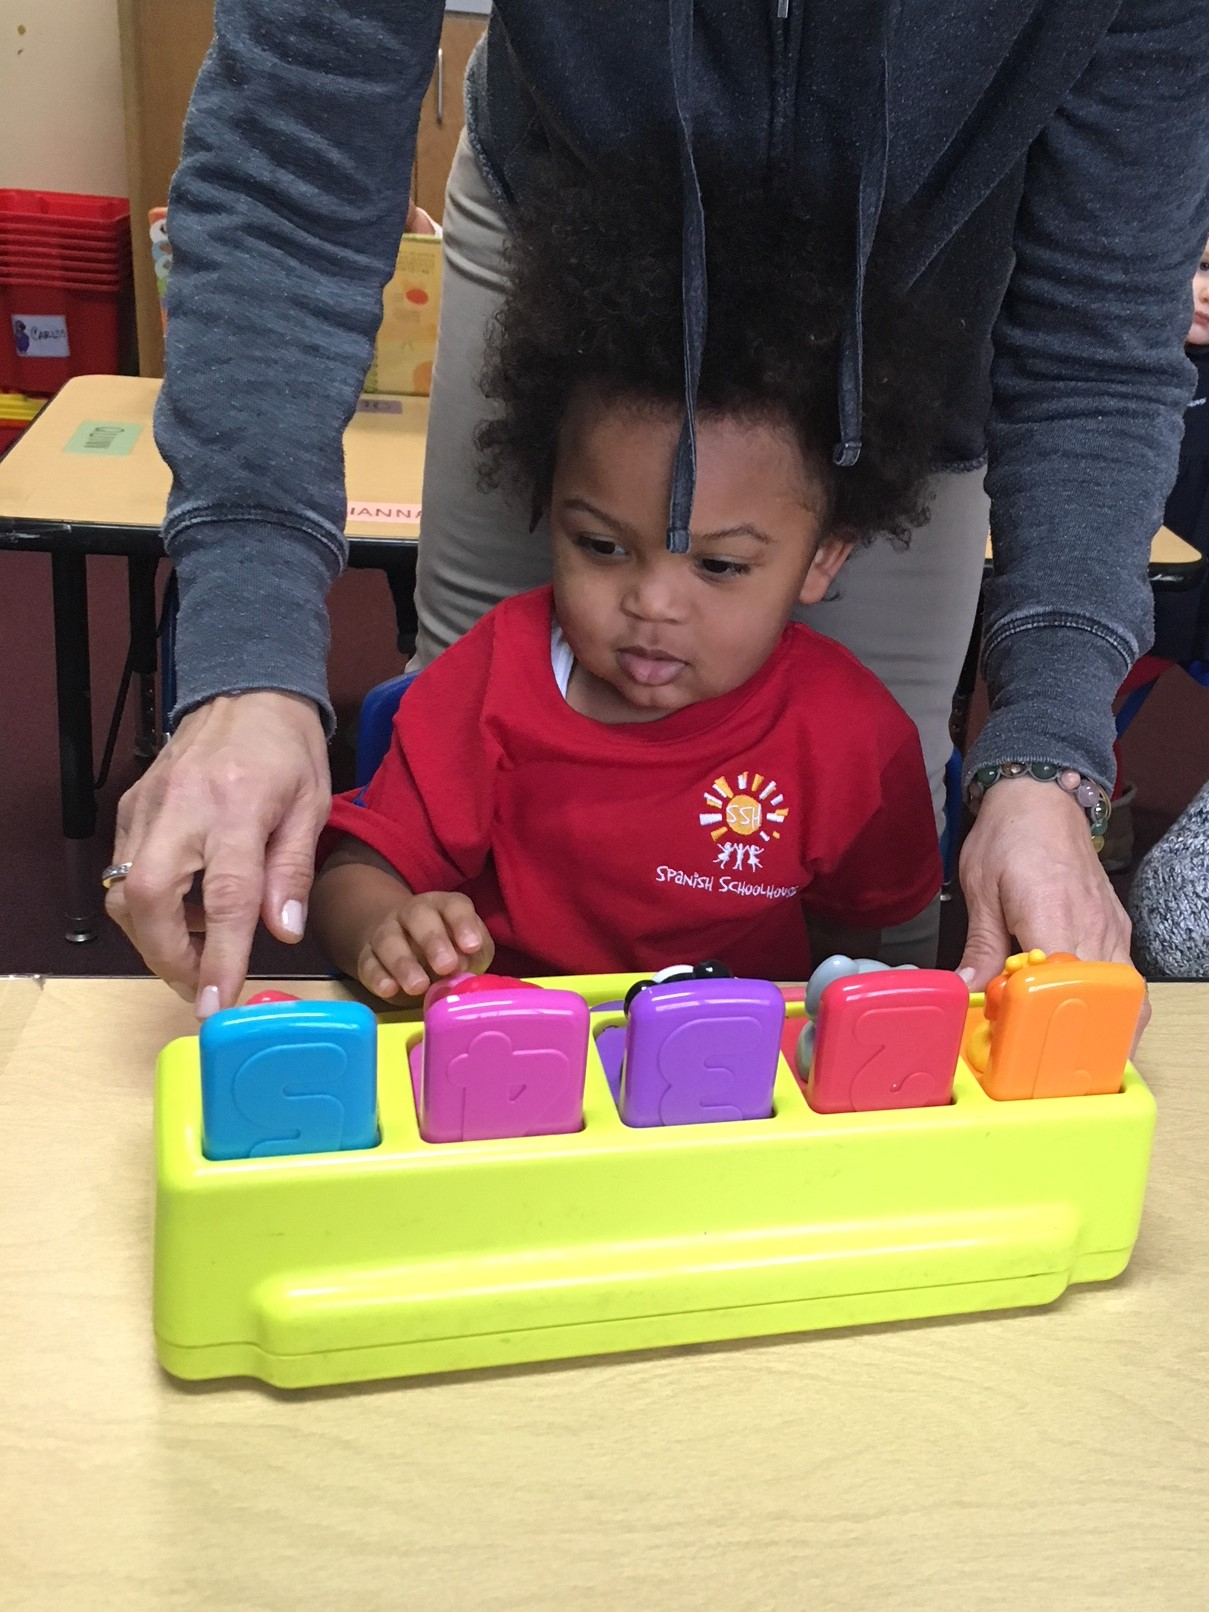 preparing for daycare is a milestone for parents and children. There are ways to ease the transition.